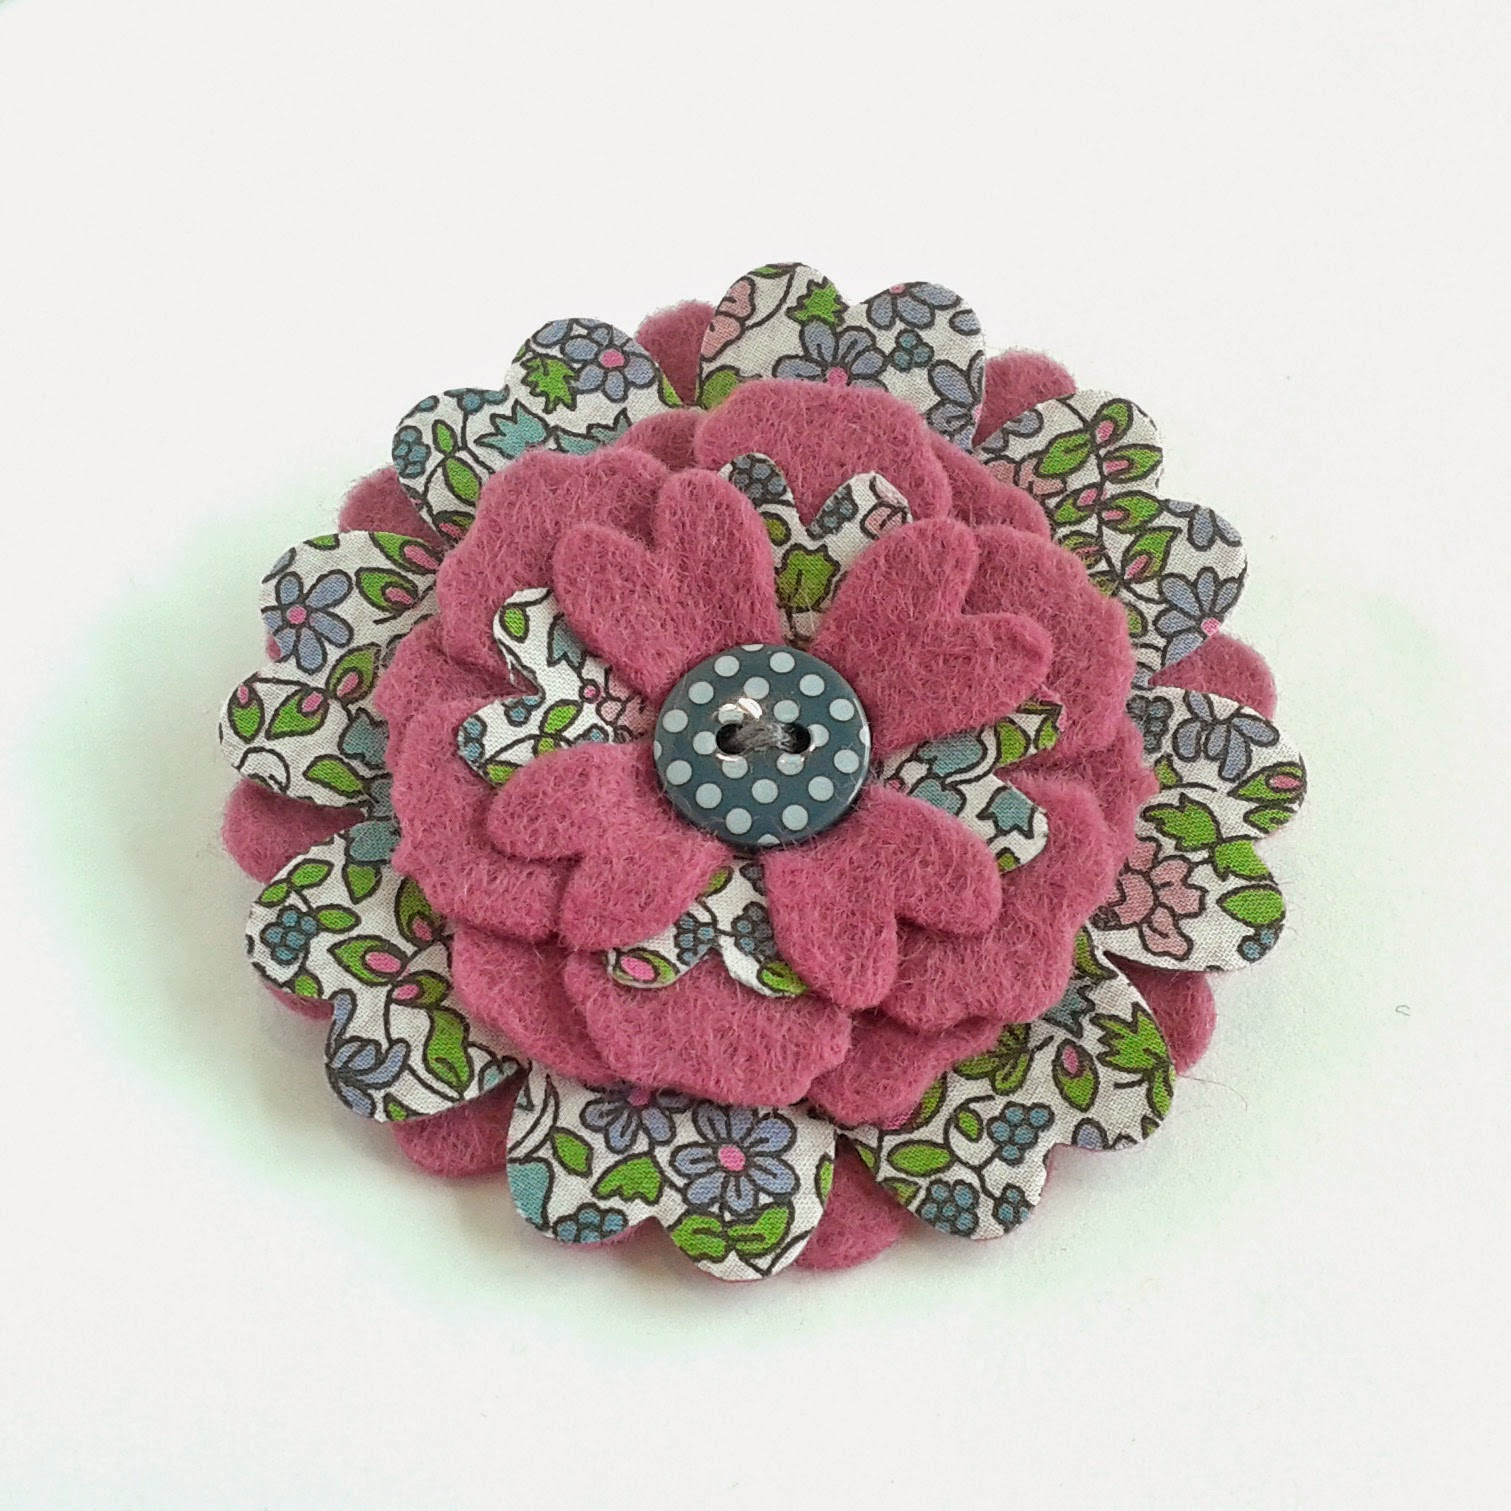 https://www.etsy.com/uk/listing/192501806/felt-flower-brooch-pin-liberty-hana-in?ref=shop_home_feat_4